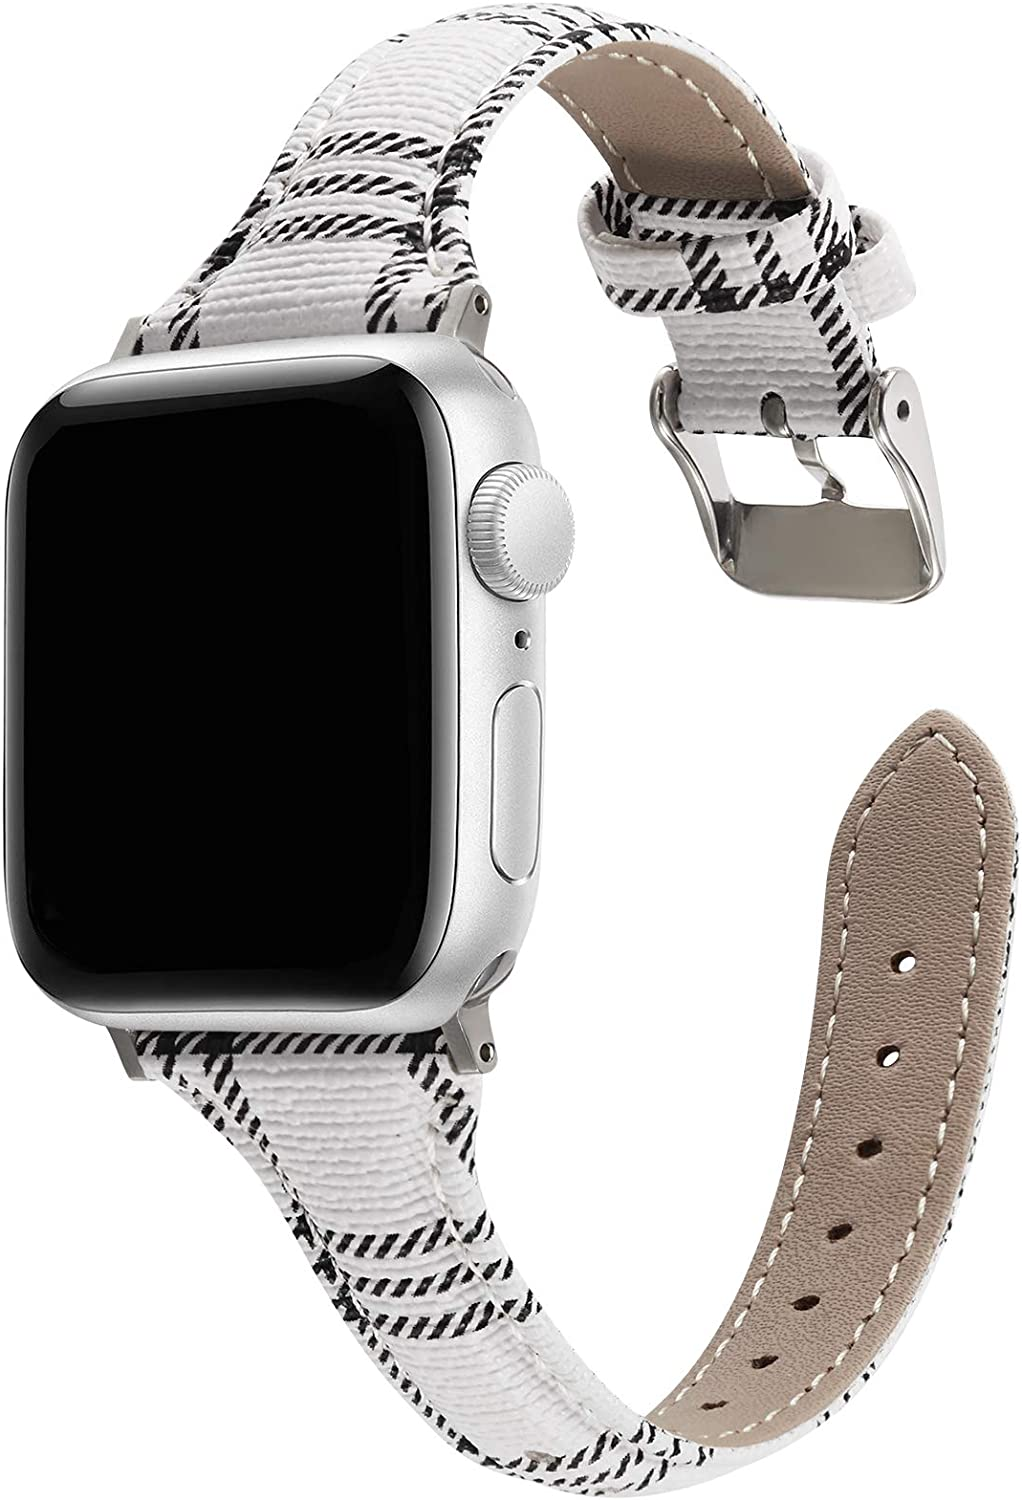 MeShow 44mm 42mm Slim Tartan Plaid Style Replacement Strap Wrist Band Watch Band with Metal Adapter Compatible for Apple Watch Series SE 6 5 4 3 2 1(Not fit for 38mm/40mm Apple Watch)